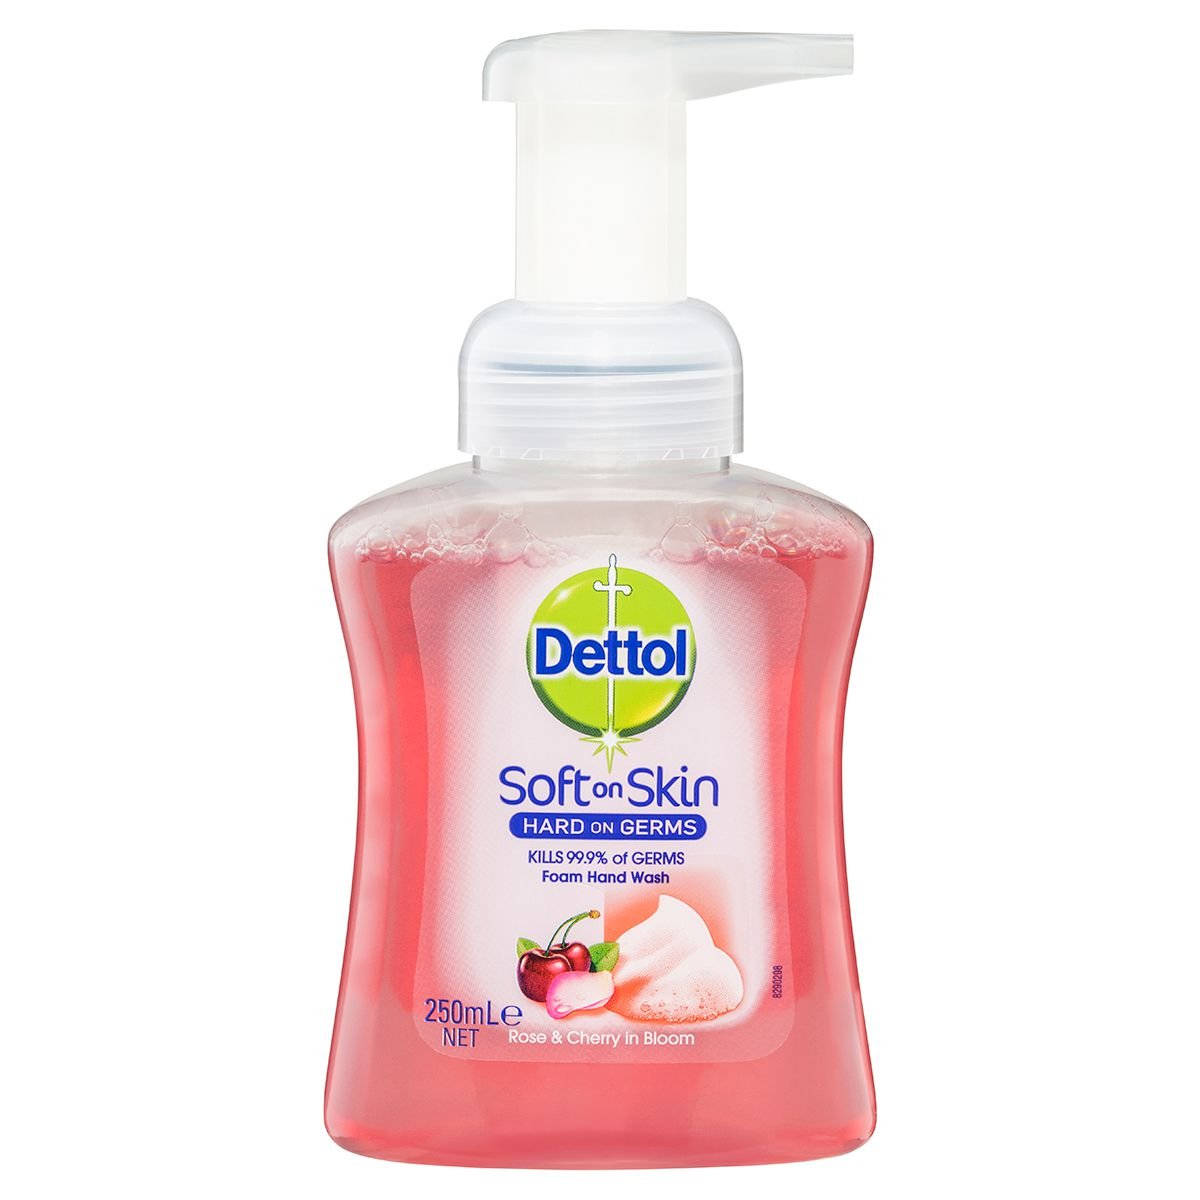 Dettol Foam Hand Wash Rose and Cherry in Bloom Pump 250ml